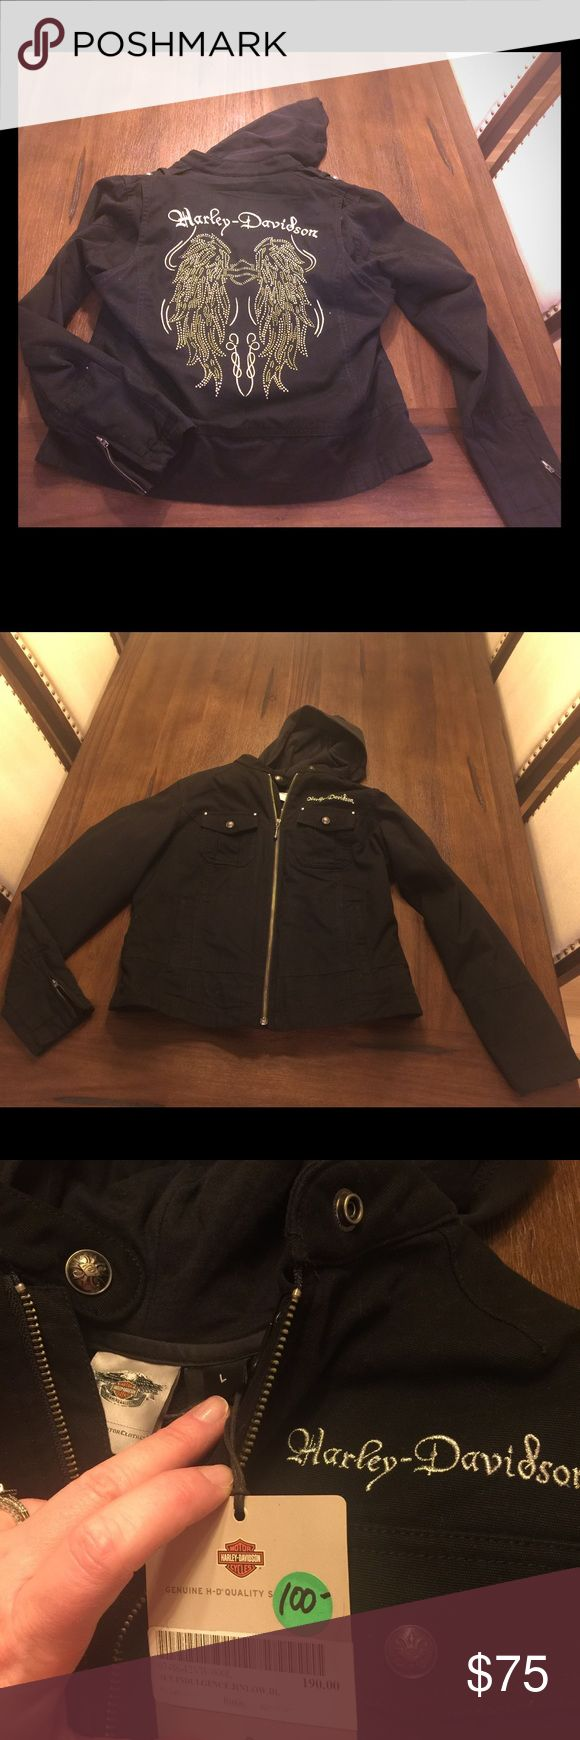 Harley Davidson jacket Women's HD twill layered jacket with cotton fleece hoodie. New with tags! Harley-Davidson Jackets & Coats Utility Jackets